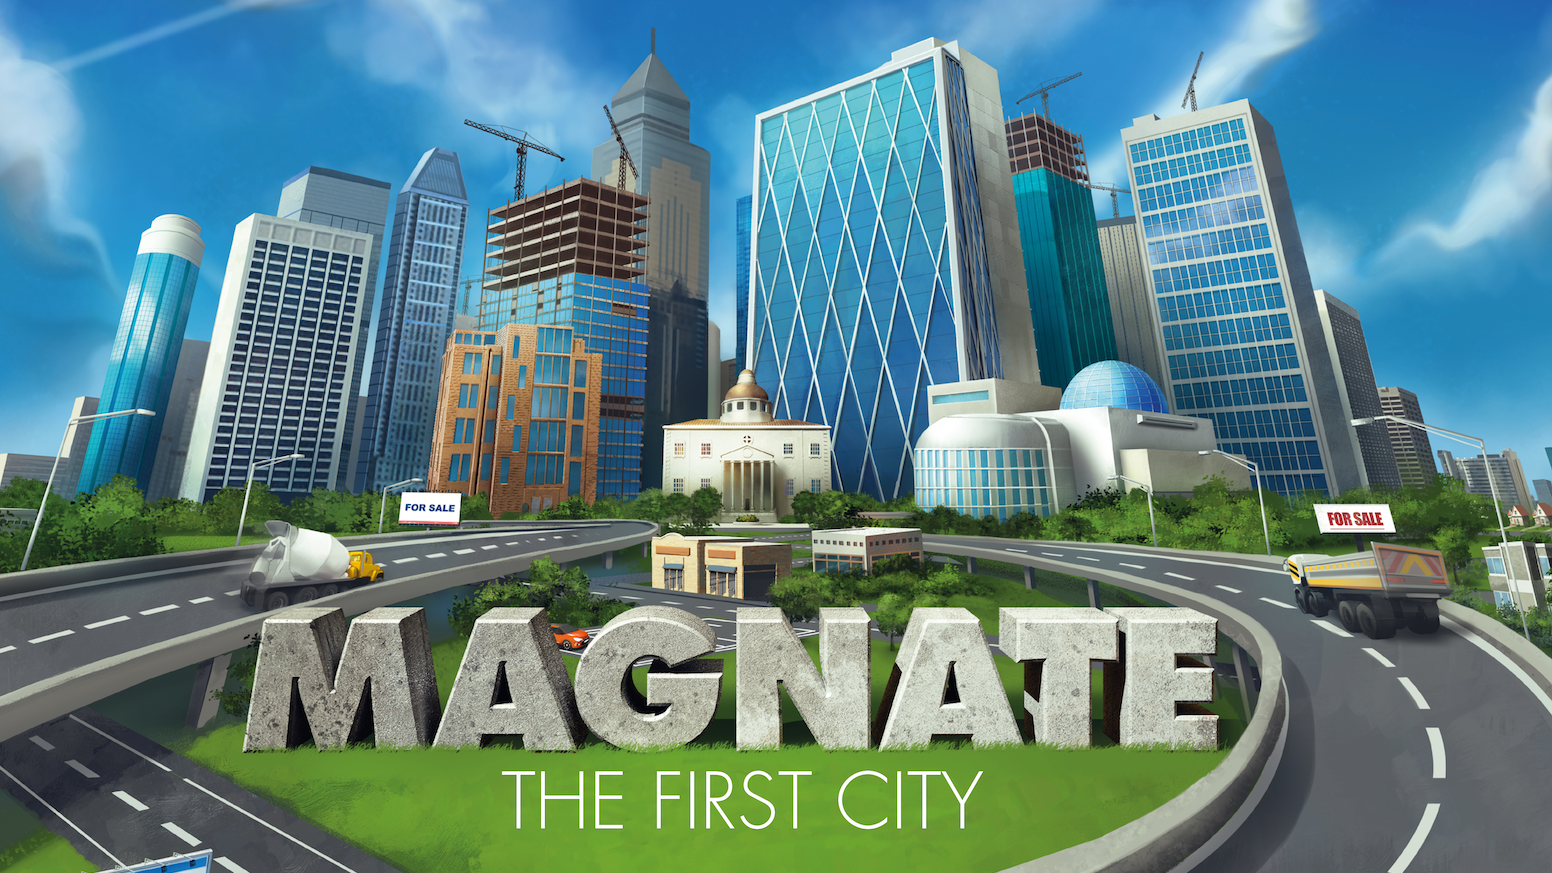 Magnate is an exciting property/city building strategy game for 1-5 players. Make as much money as you can before the market crashes!